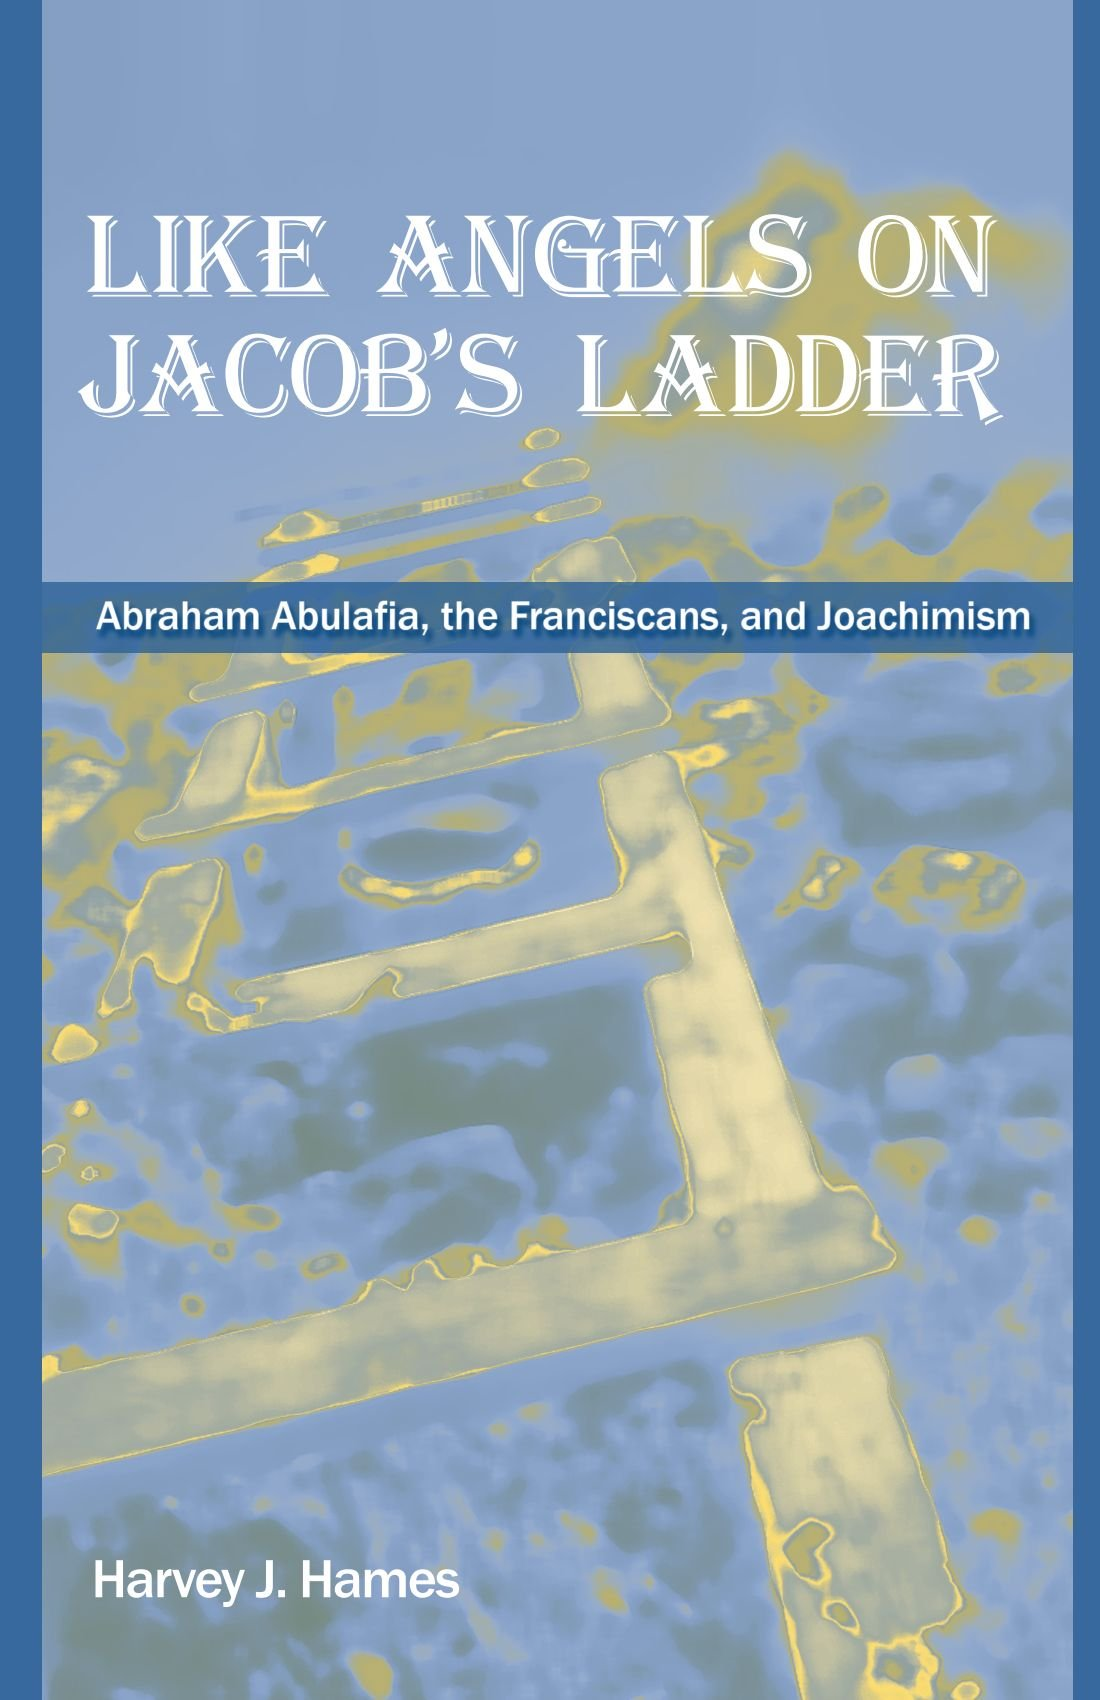 Like Angels on Jacob's Ladder: Abraham Abulafia, the Franciscans, and Joachimism